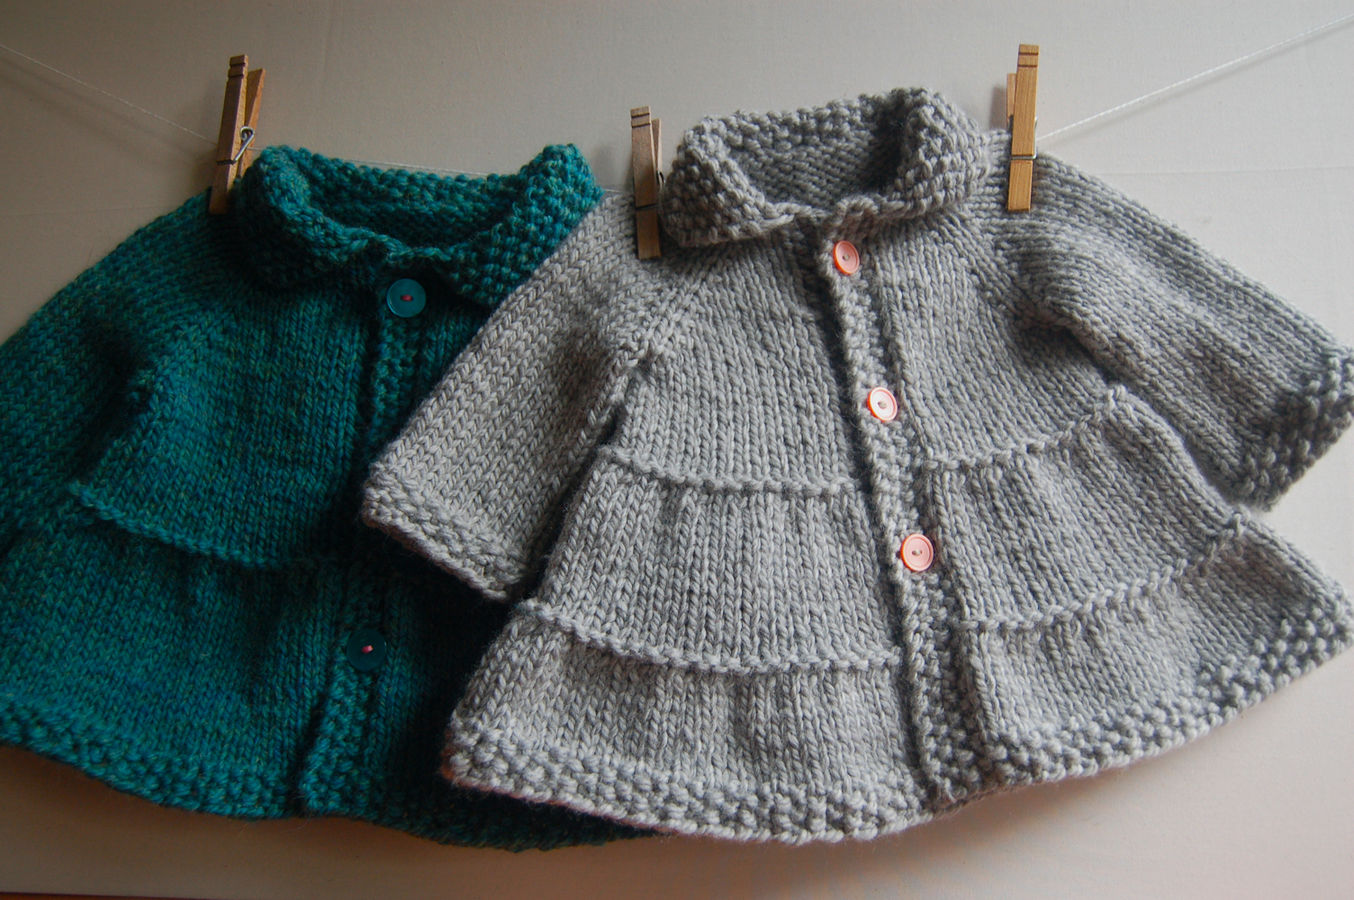 Tiered Baby and child Coat and Jacket - easy knitting pattern (en)